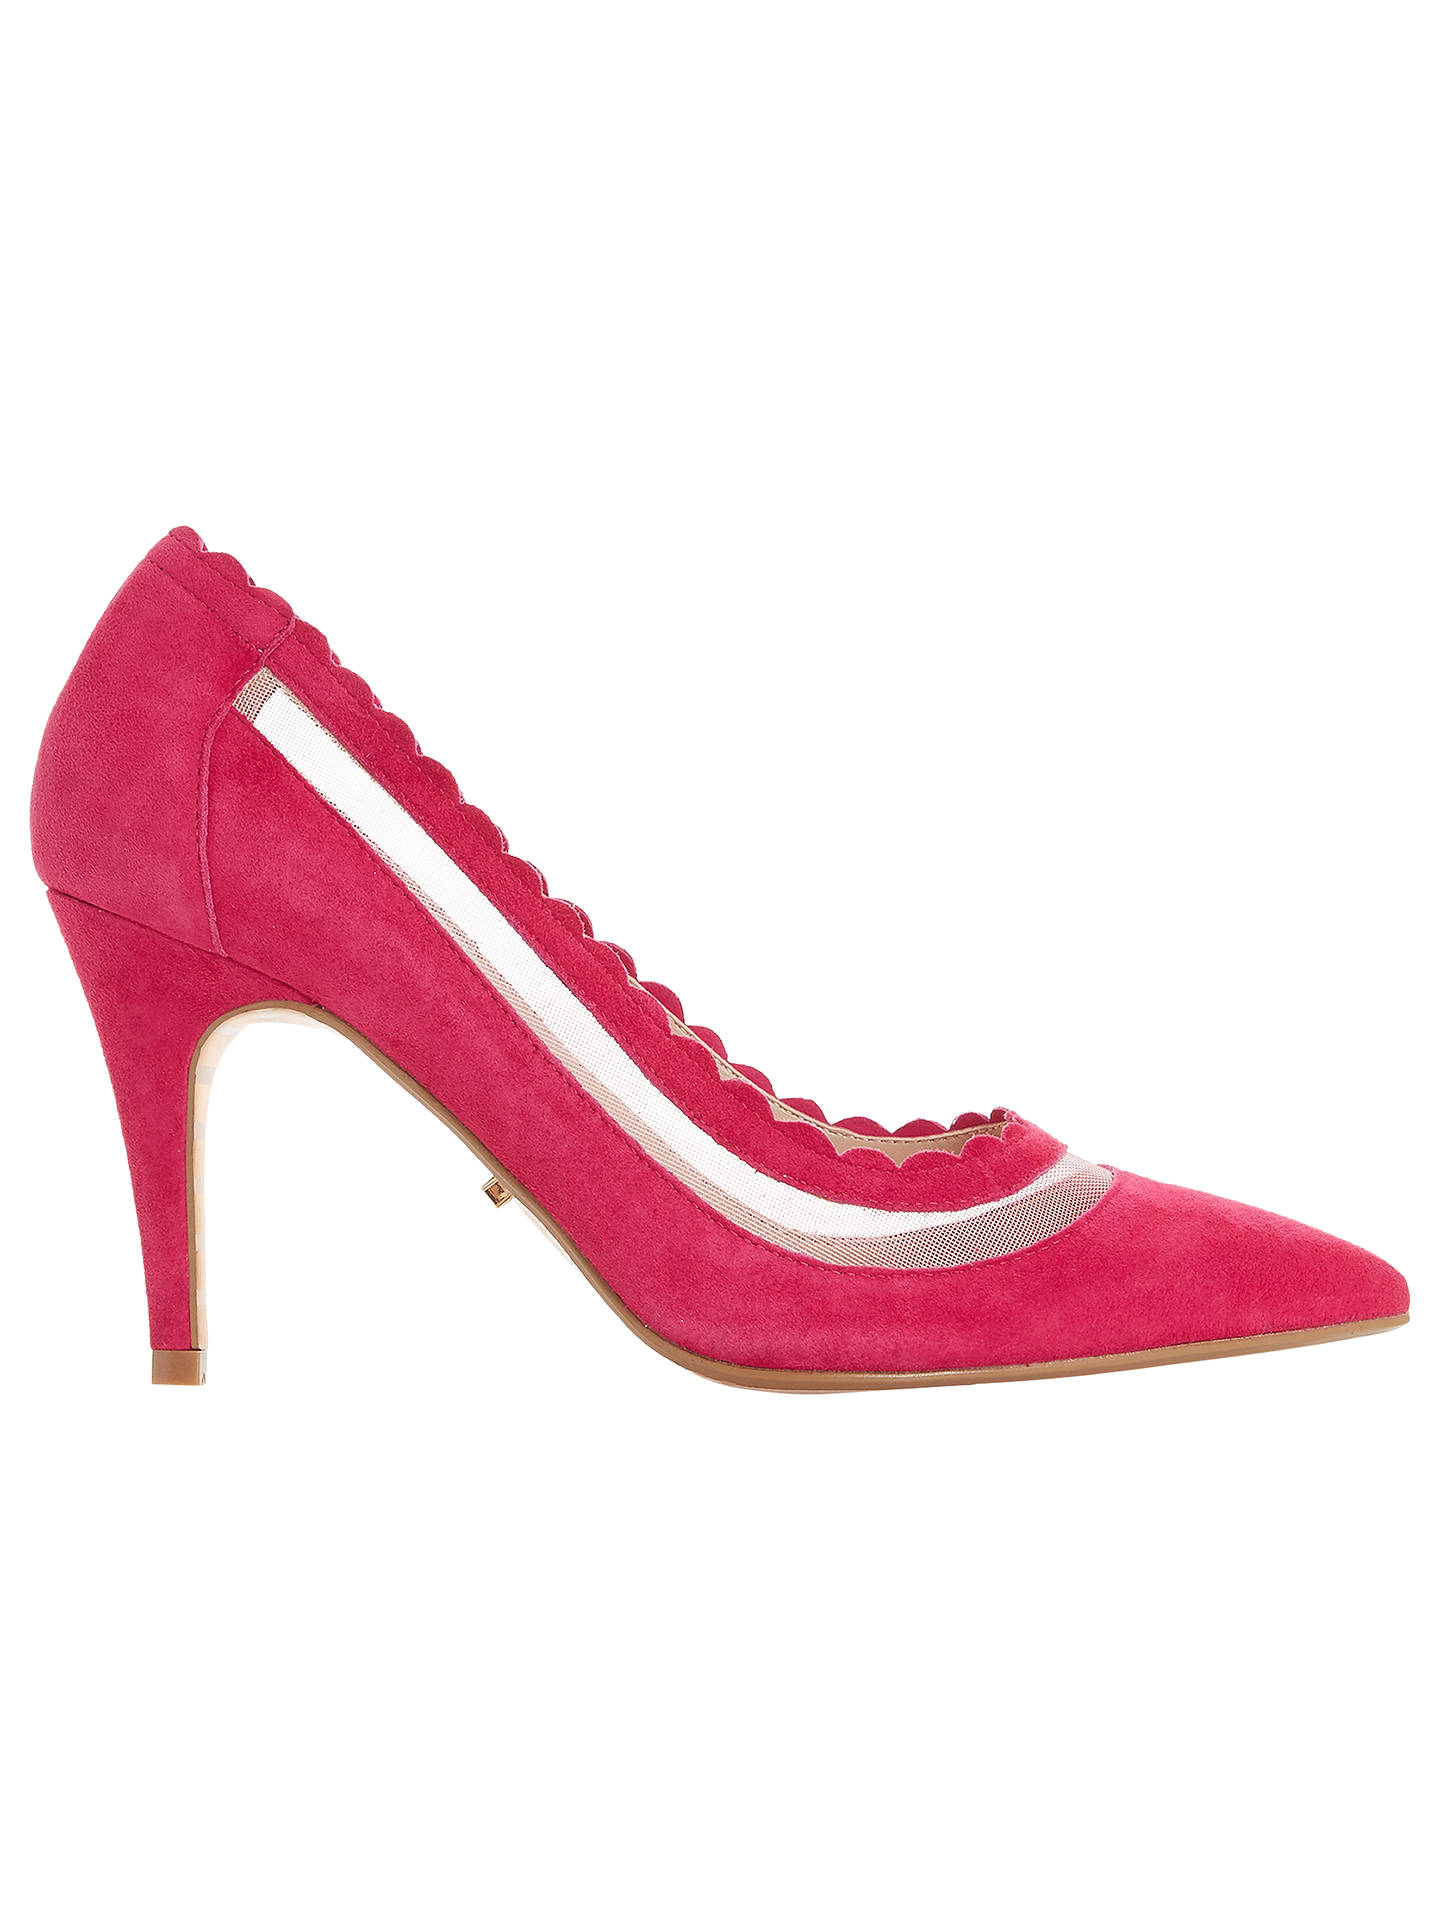 ef132b90dff Dune Britania Scallop Court Shoes, Pink Suede at John Lewis & Partners